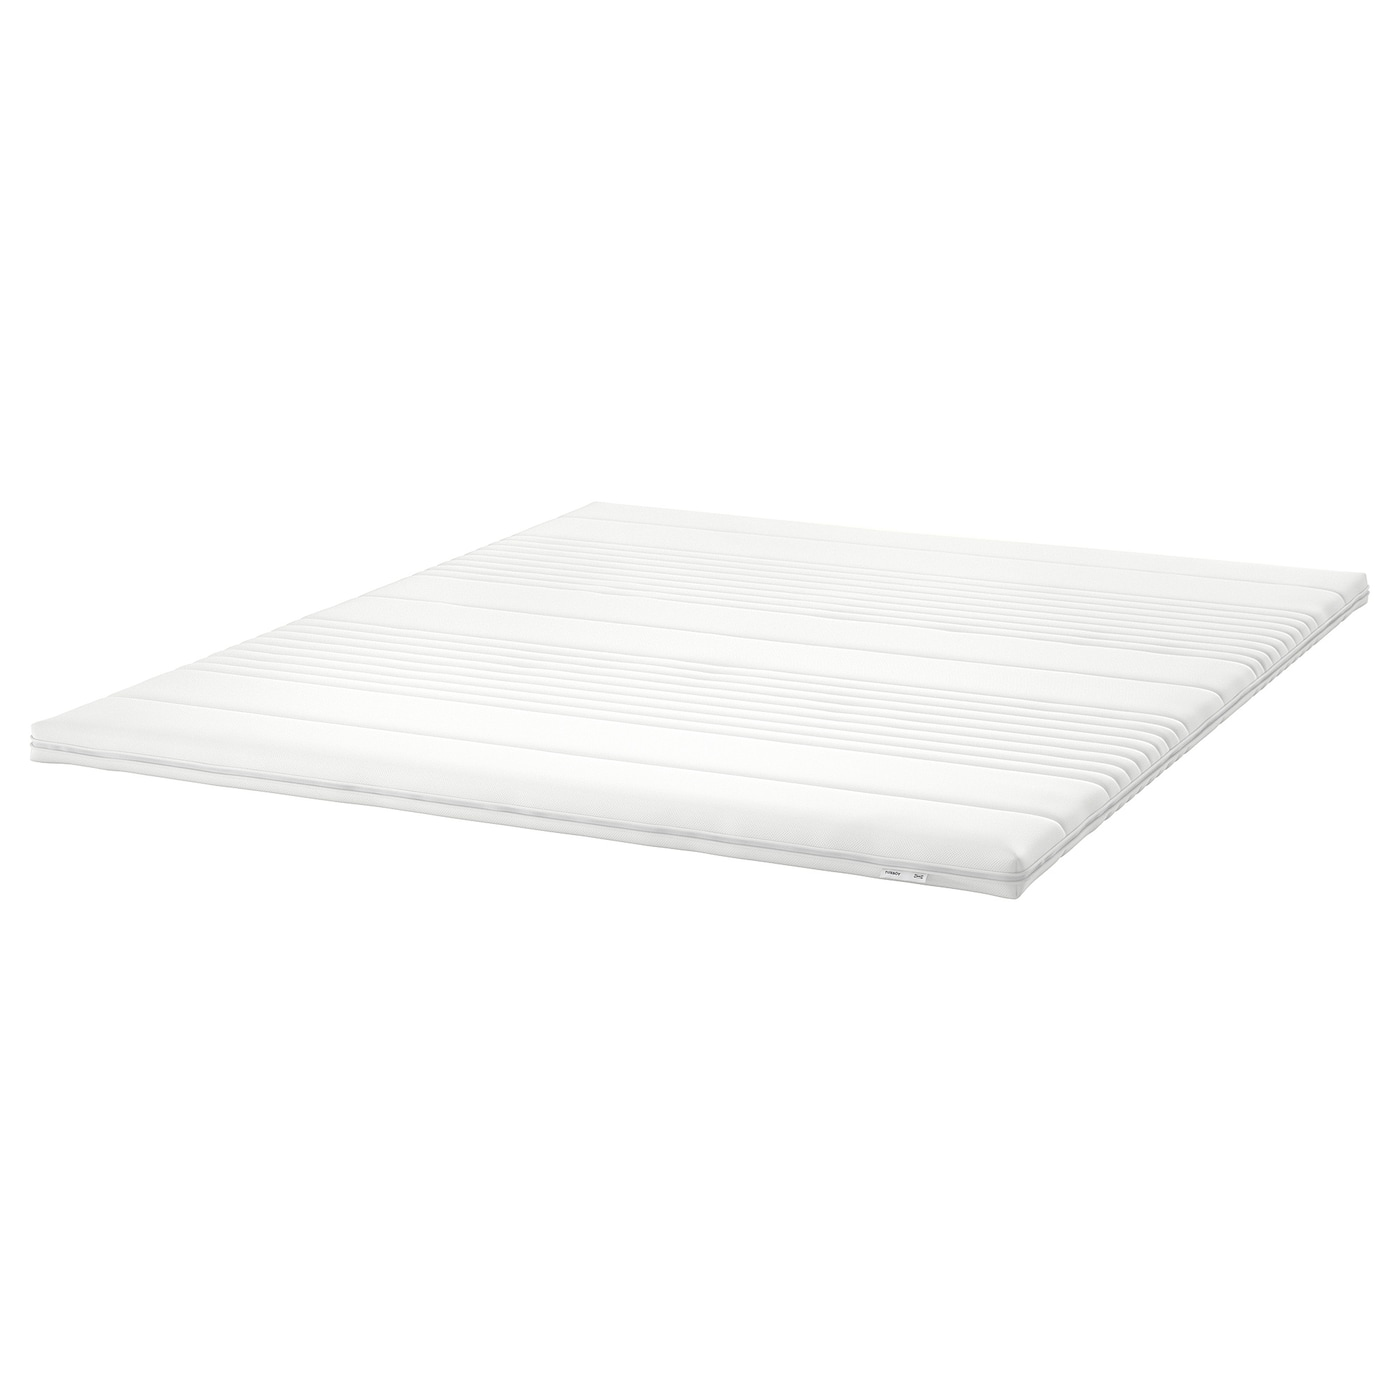 tuss y surmatelas blanc 180 x 200 cm ikea. Black Bedroom Furniture Sets. Home Design Ideas